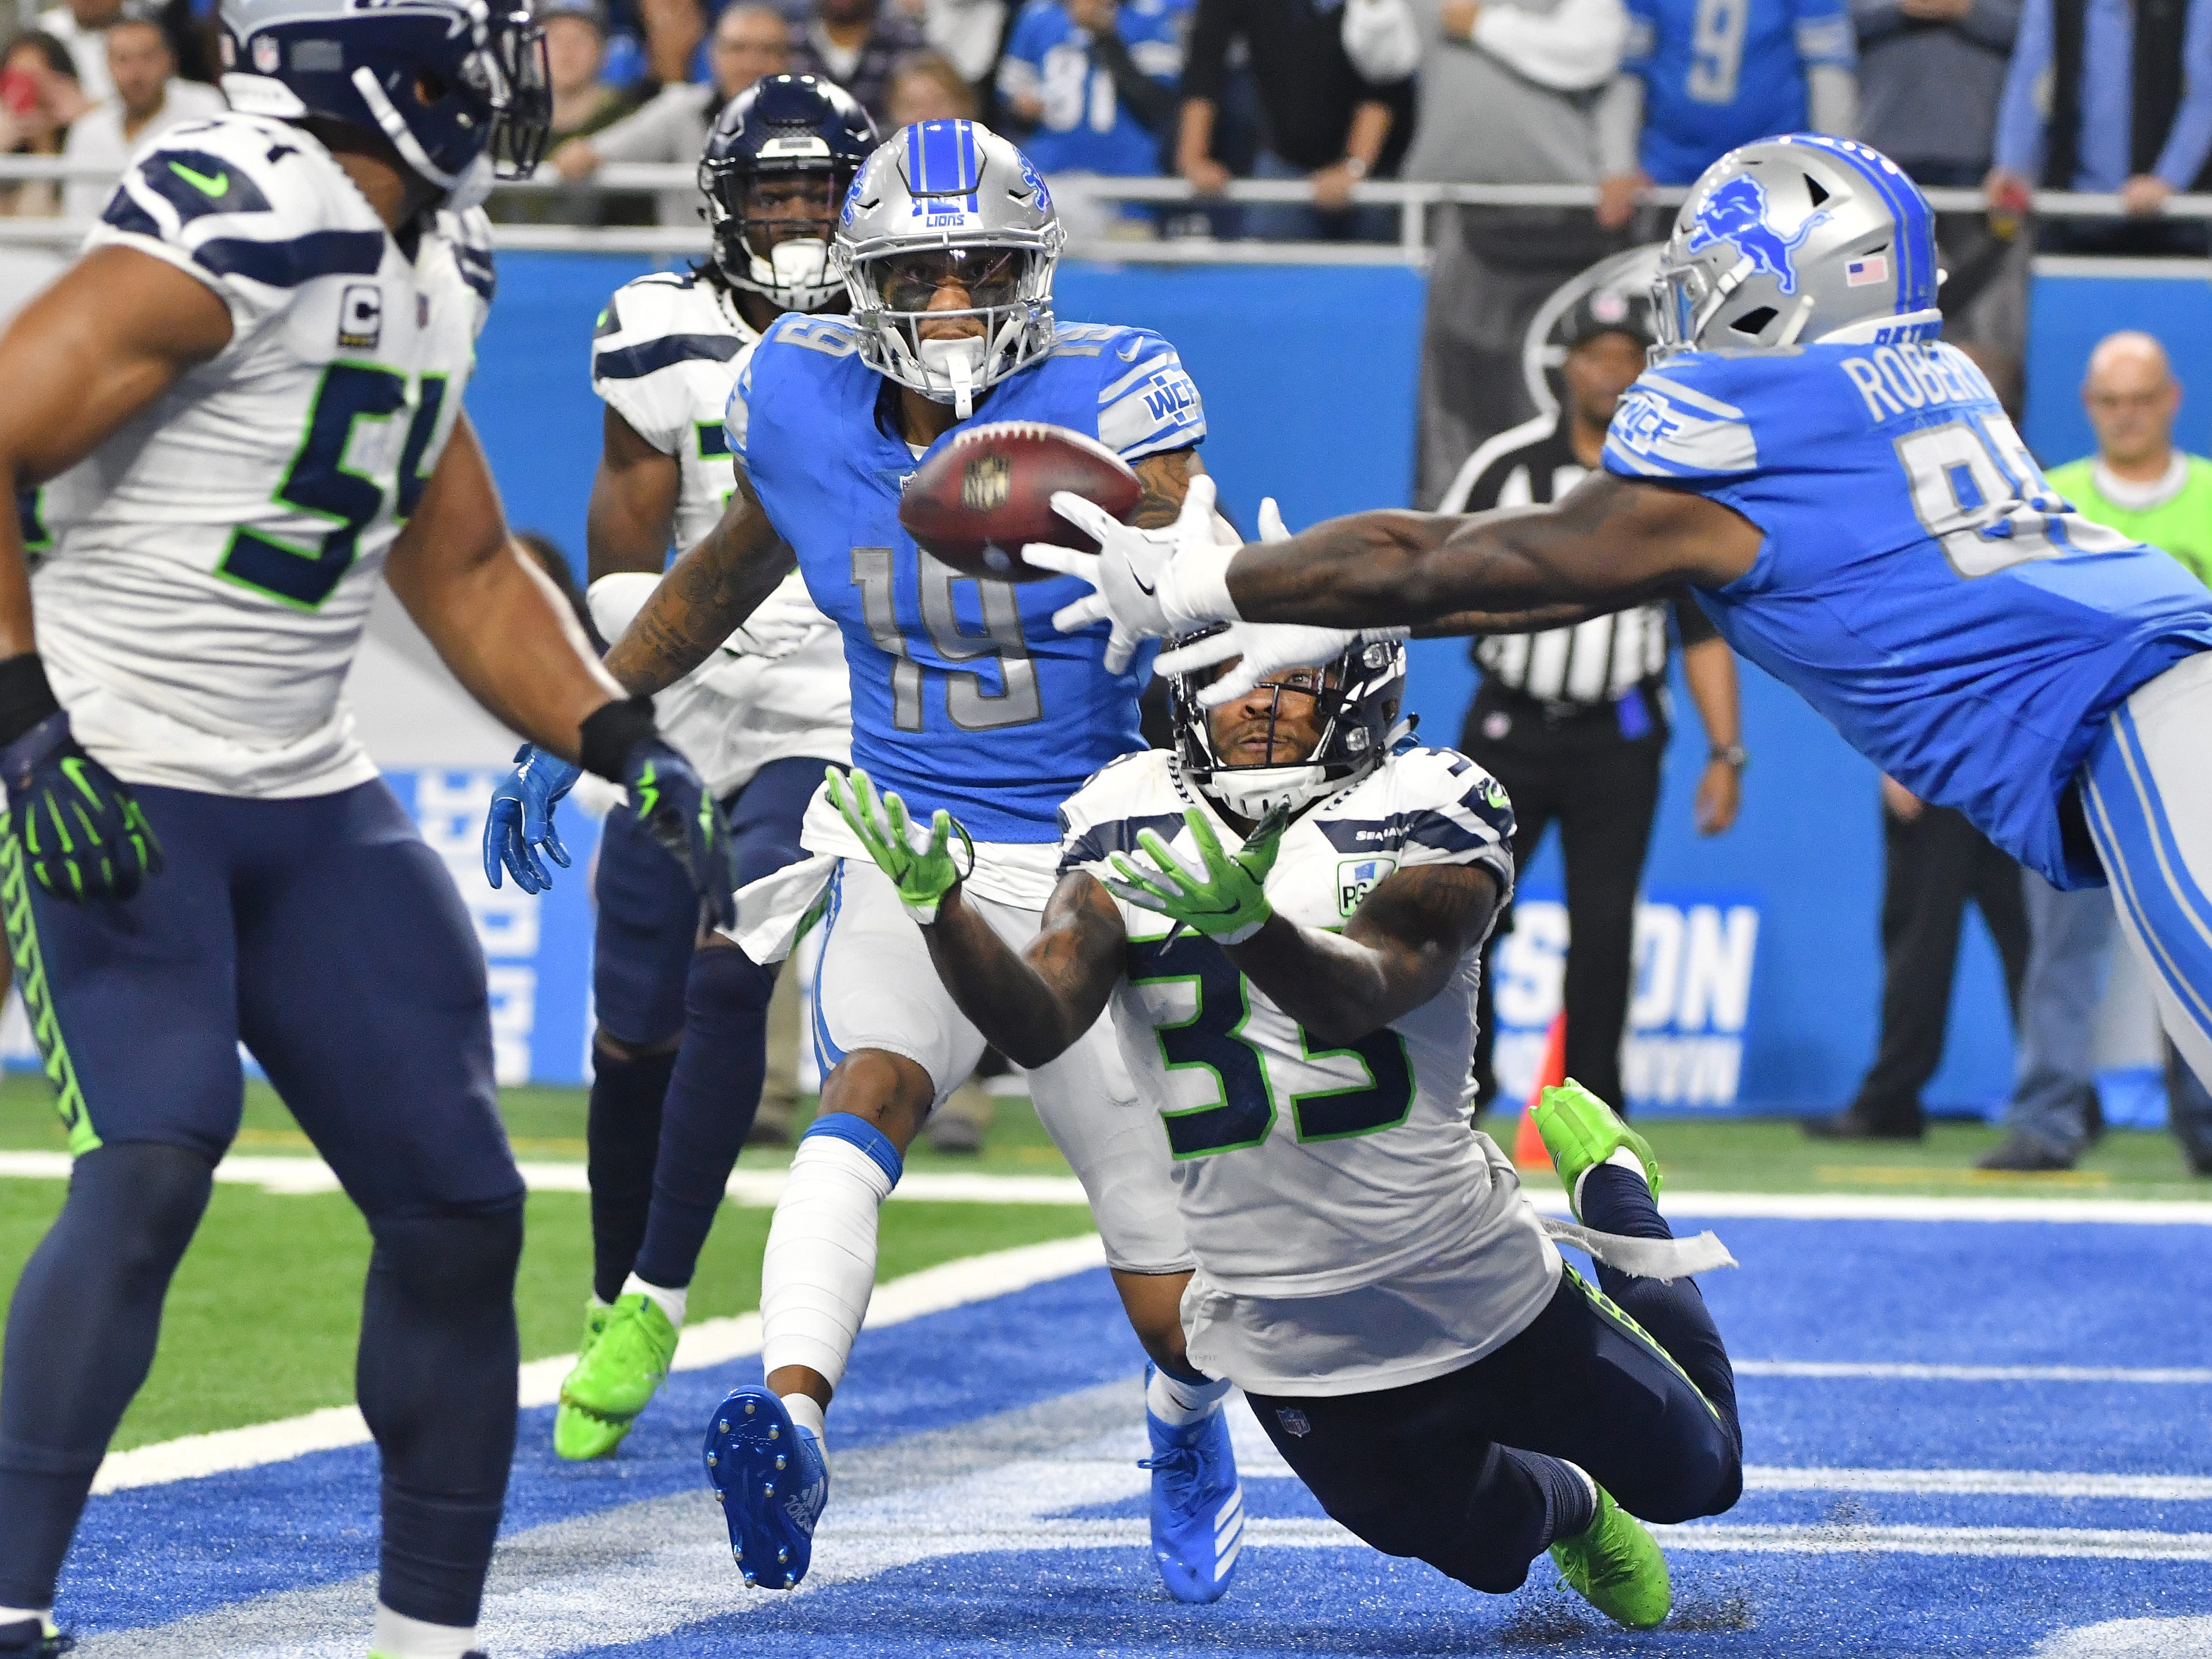 Lions' Kenny Golladay and Michael Roberts battle for a ball thrown into the end zone with Seahawks' Cedric Thompson, with no one able to pull it in late in the fourth quarter.